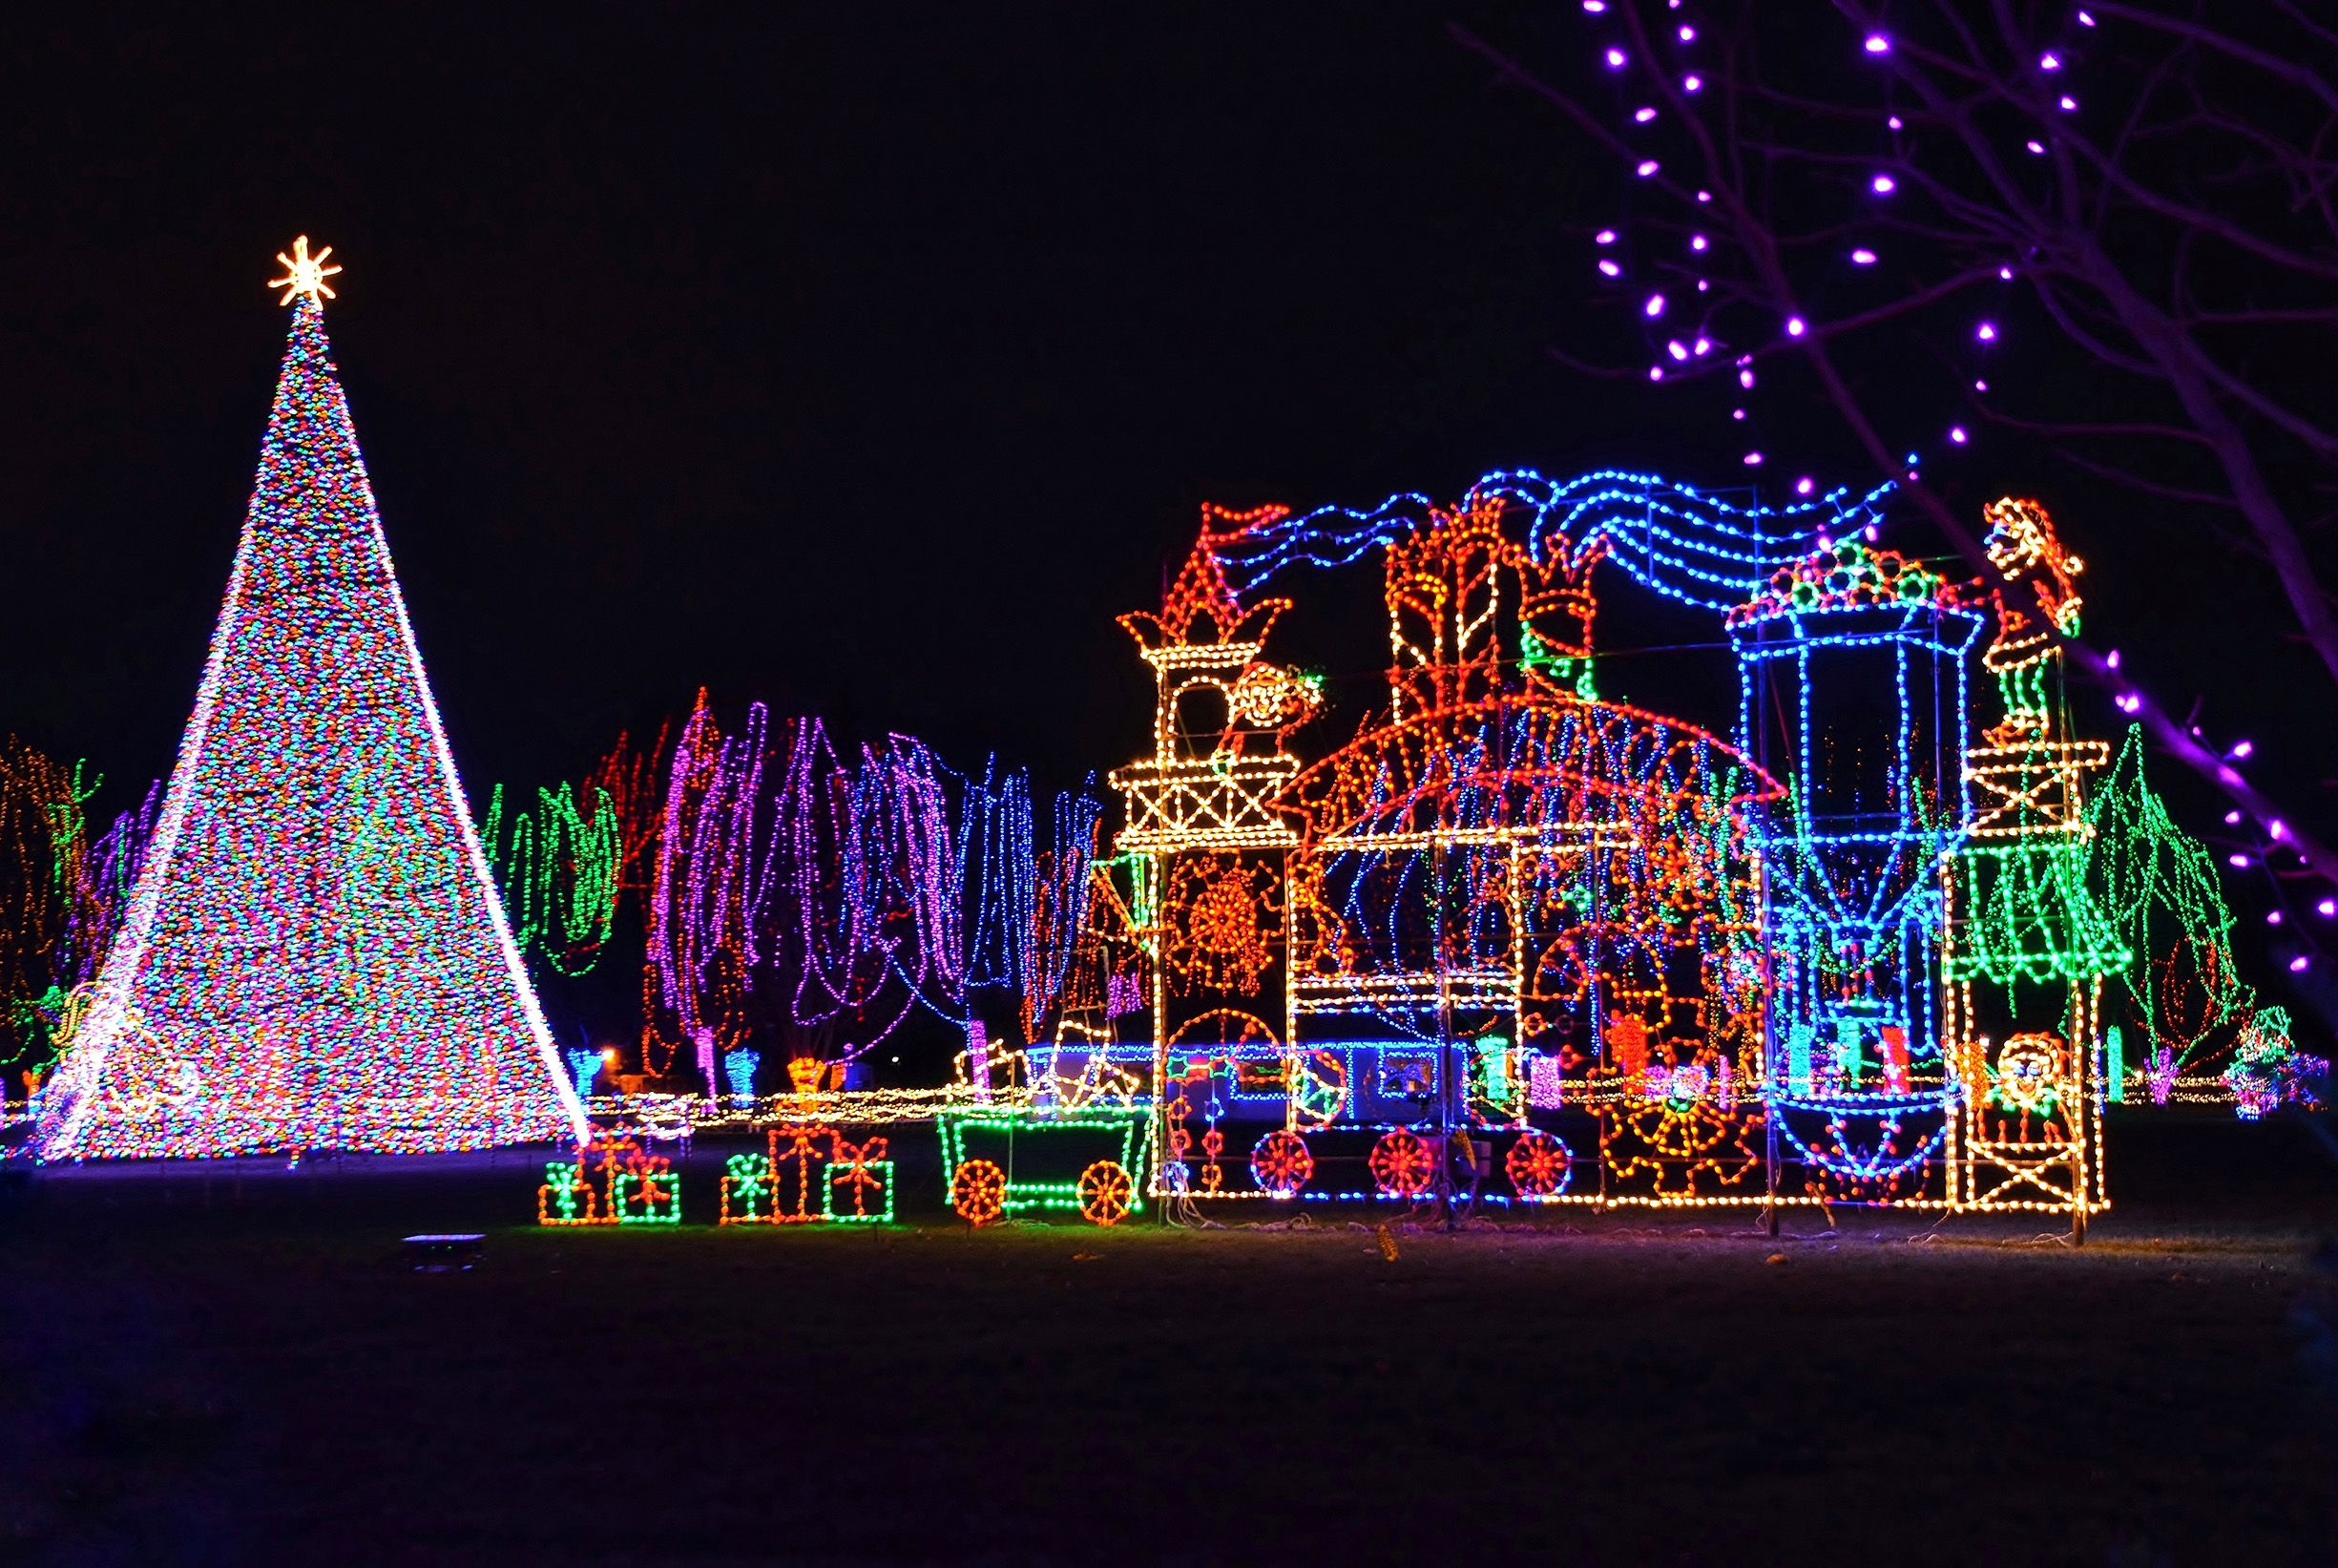 Christmas Lights Near Me - Best Holiday Light Shows in the U.S.